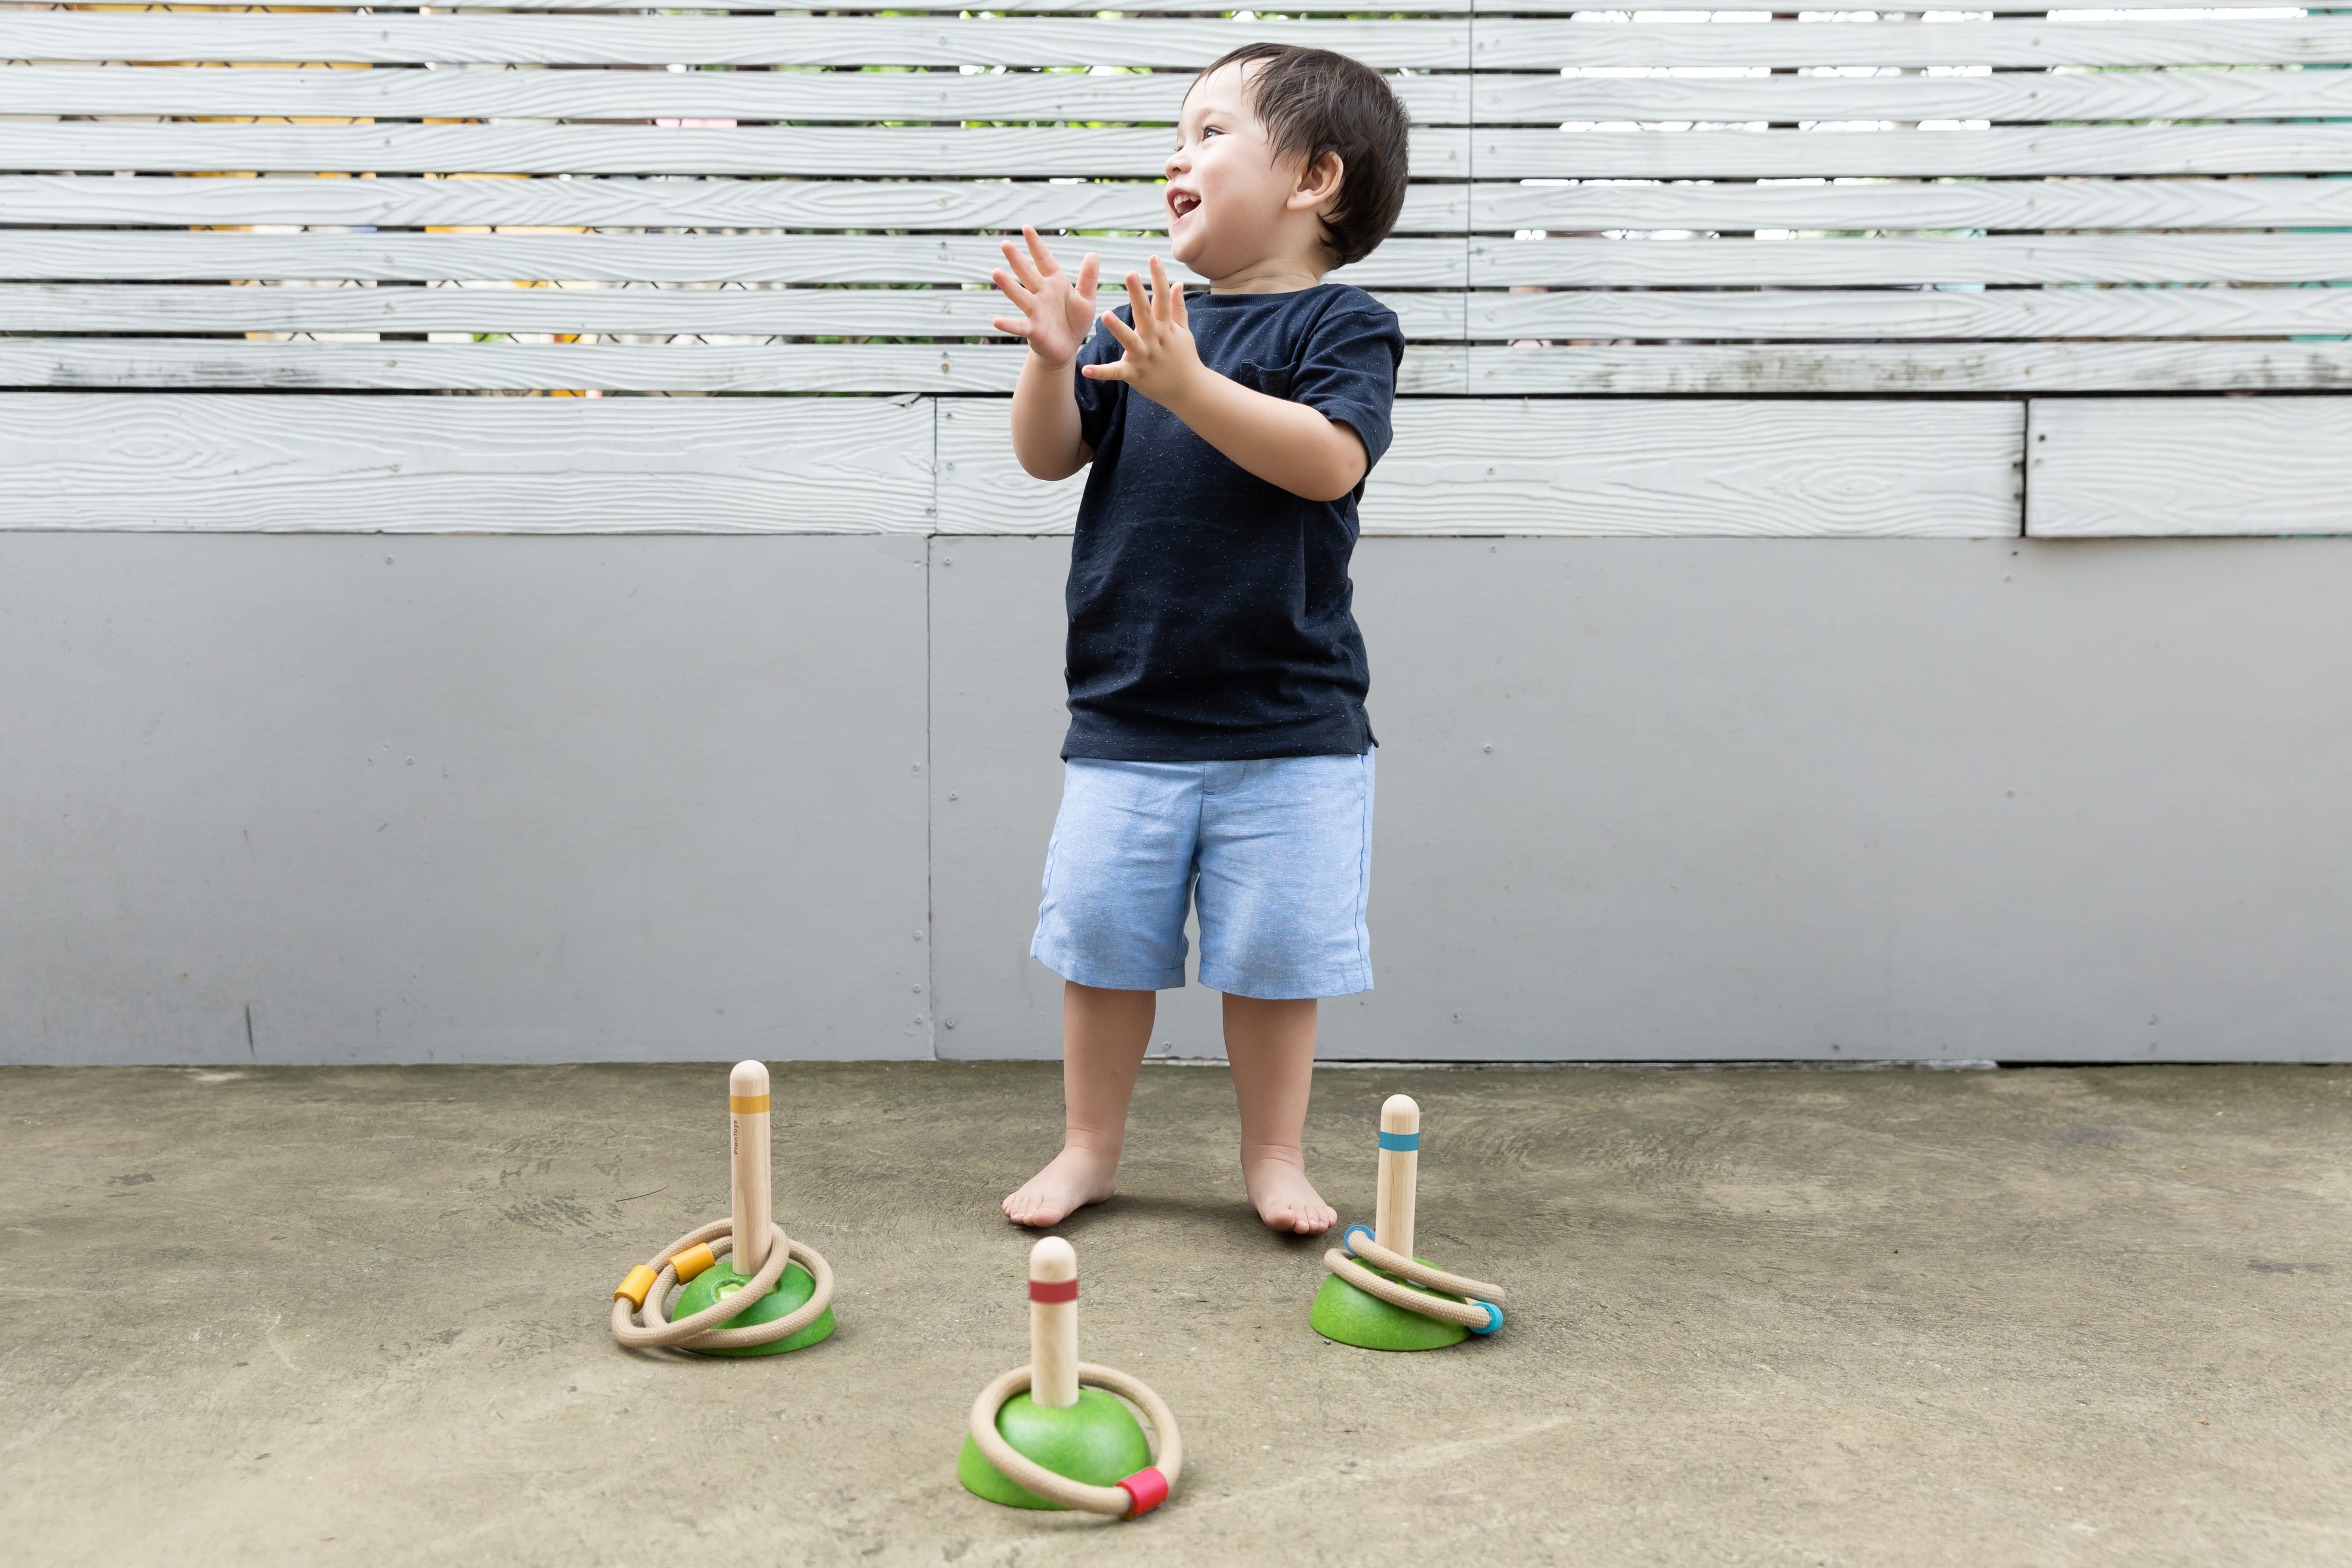 5652_PlanToys_MEADOW_RING_TOSS_Active_Play_Gross_Motor_Coordination_Social_Concentration_3yrs_Wooden_toys_Education_toys_Safety_Toys_Non-toxic_2.jpg